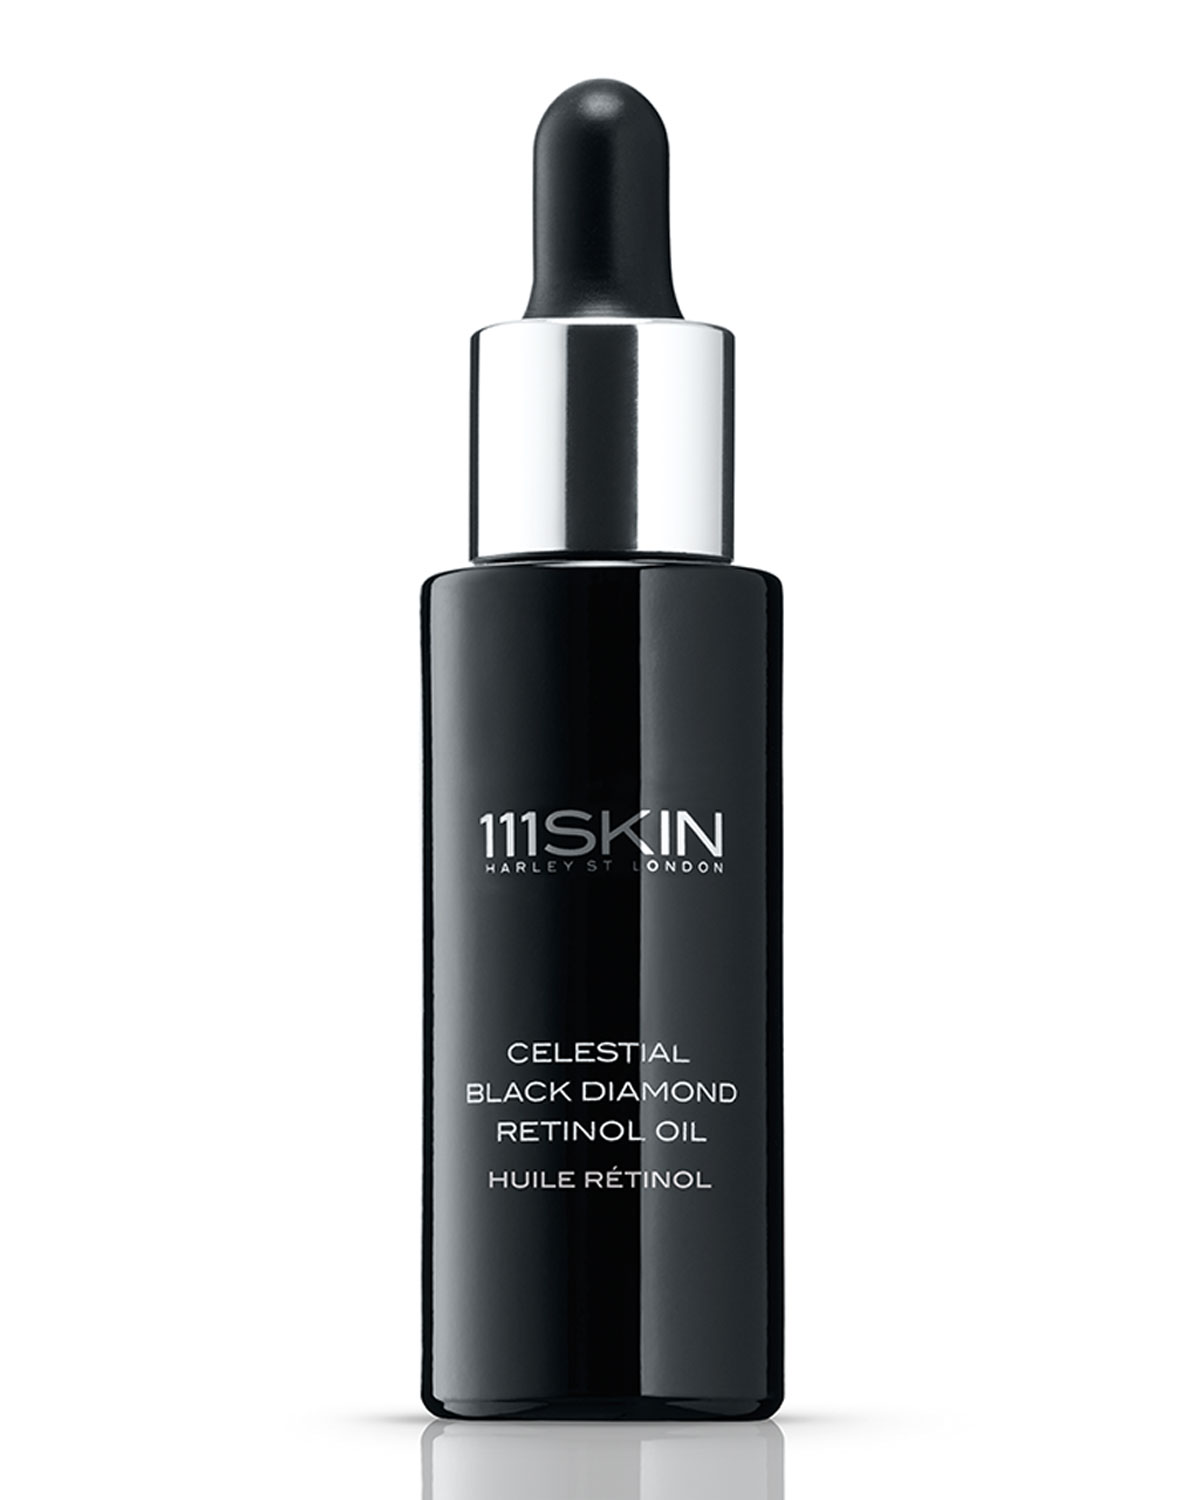 111SKIN 1.0 oz. Celestial Black Diamond Retinol Oil